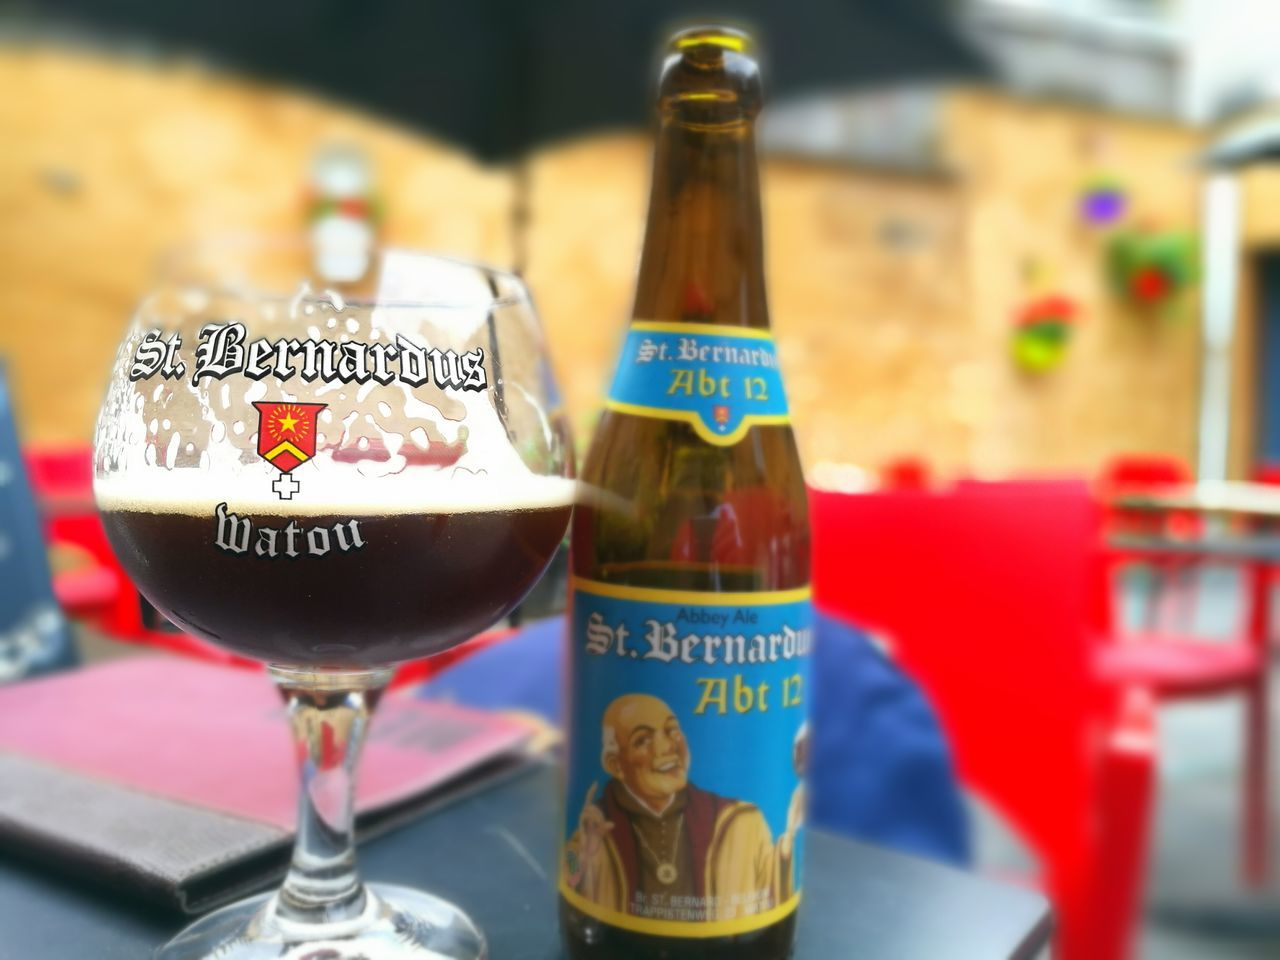 Enjoying Life Beer Hanging Out St Bernardus Trappist Beer Trappist Strong Beer Halelujah Close-up No People